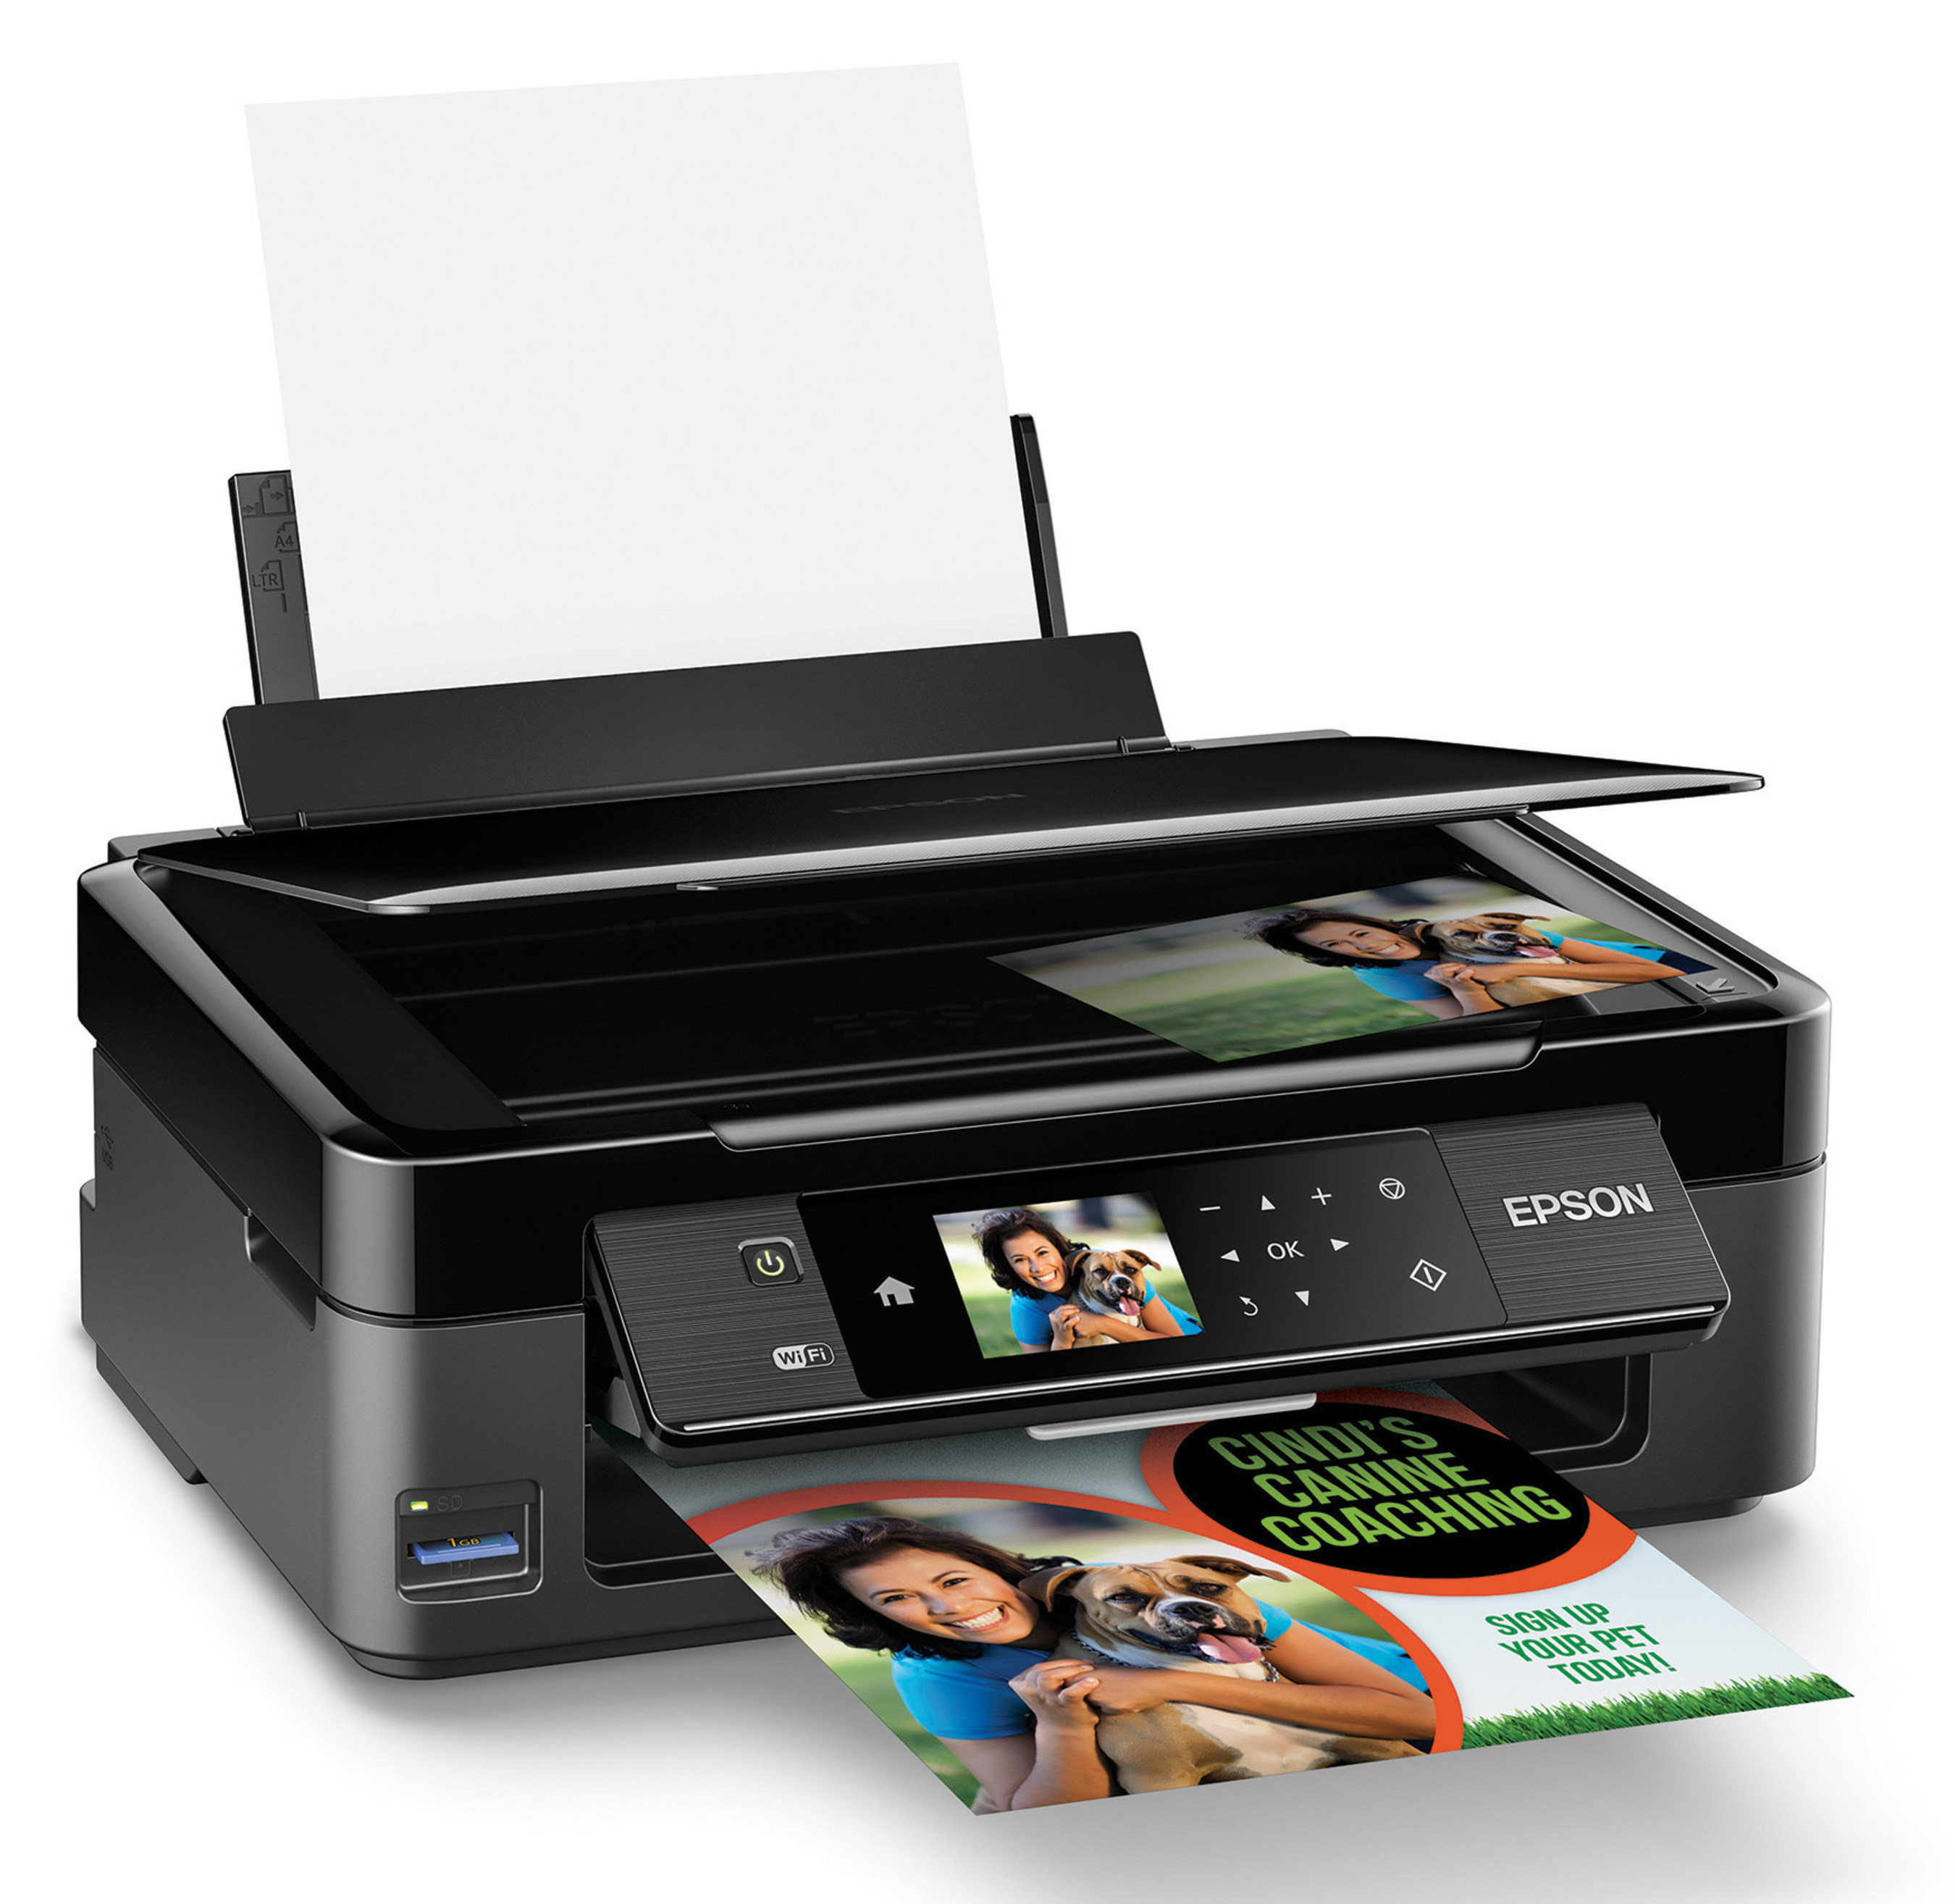 Epson Unveils New Expression Home XP-430 Small-in-One Printer